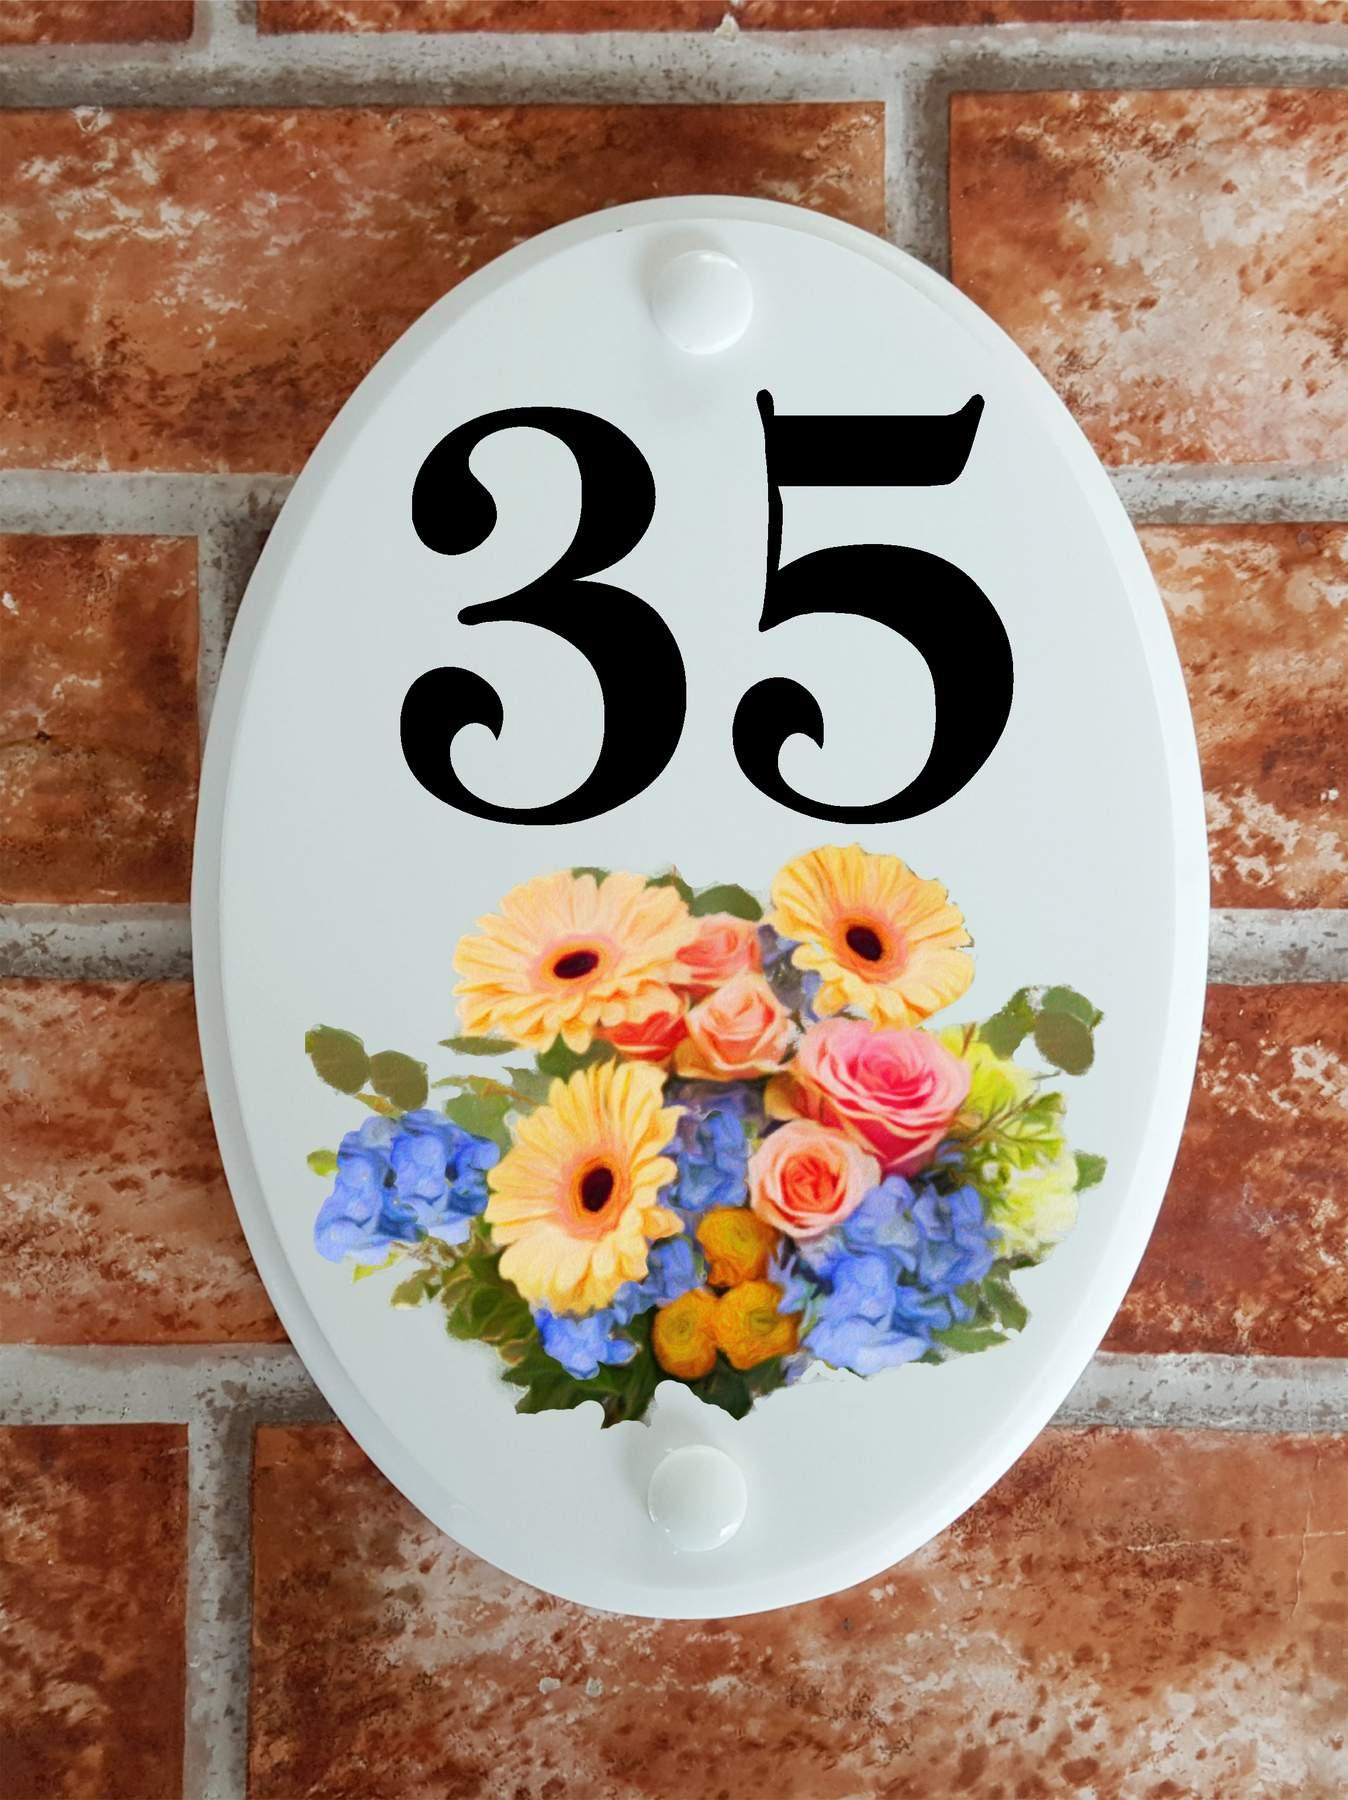 colourful flower arangement on a house number sign